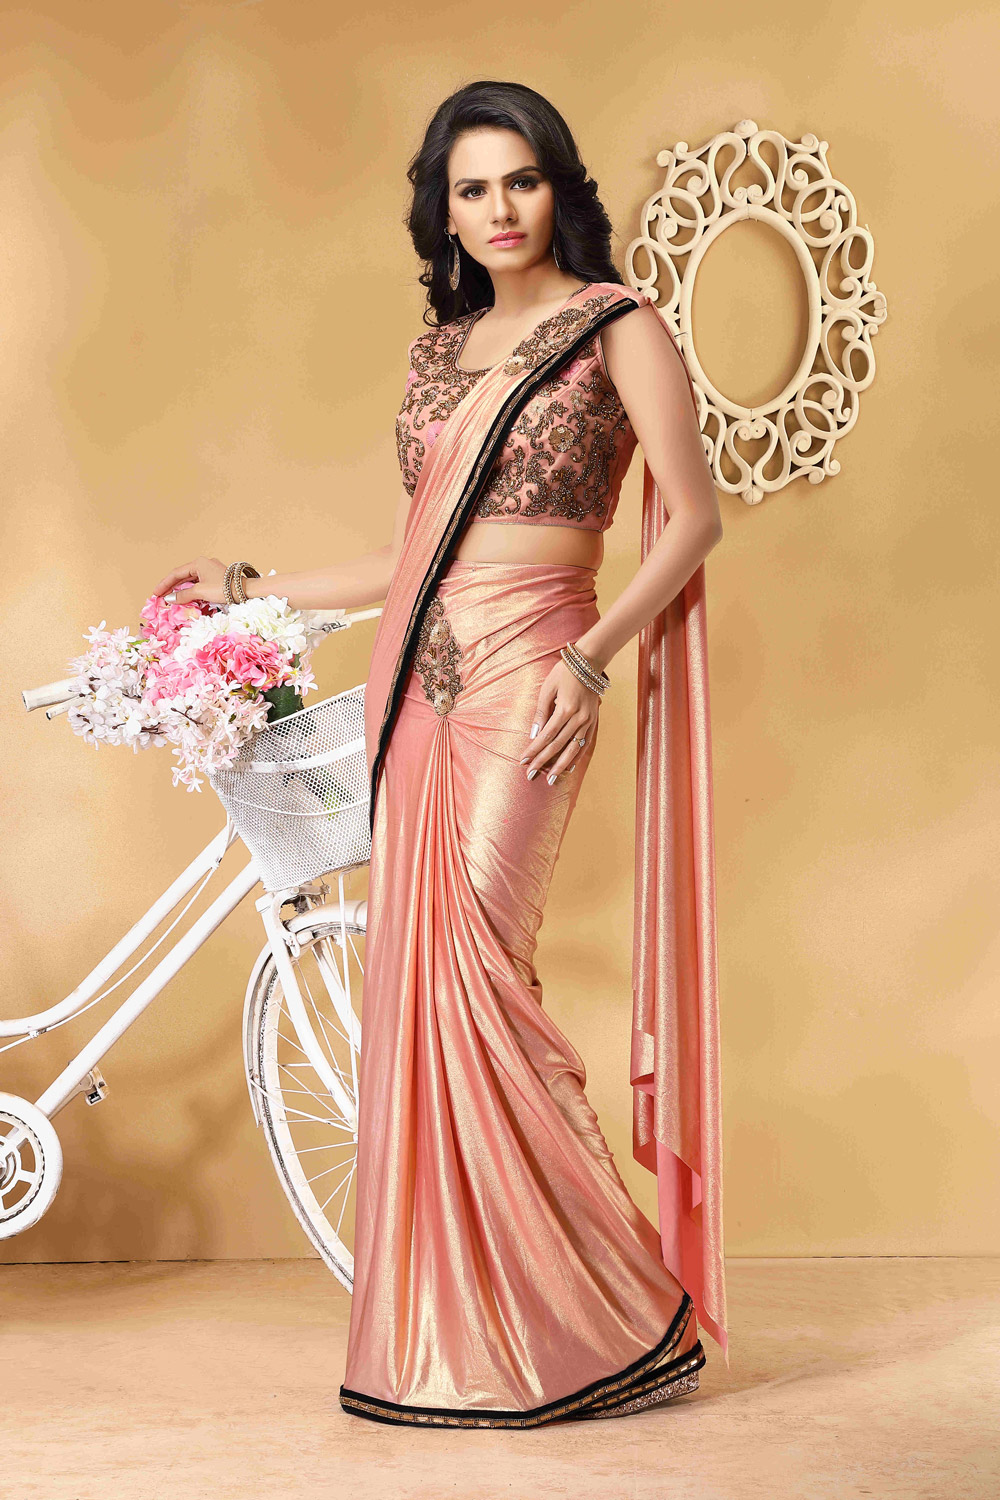 Ready to wear sari for any special occasion